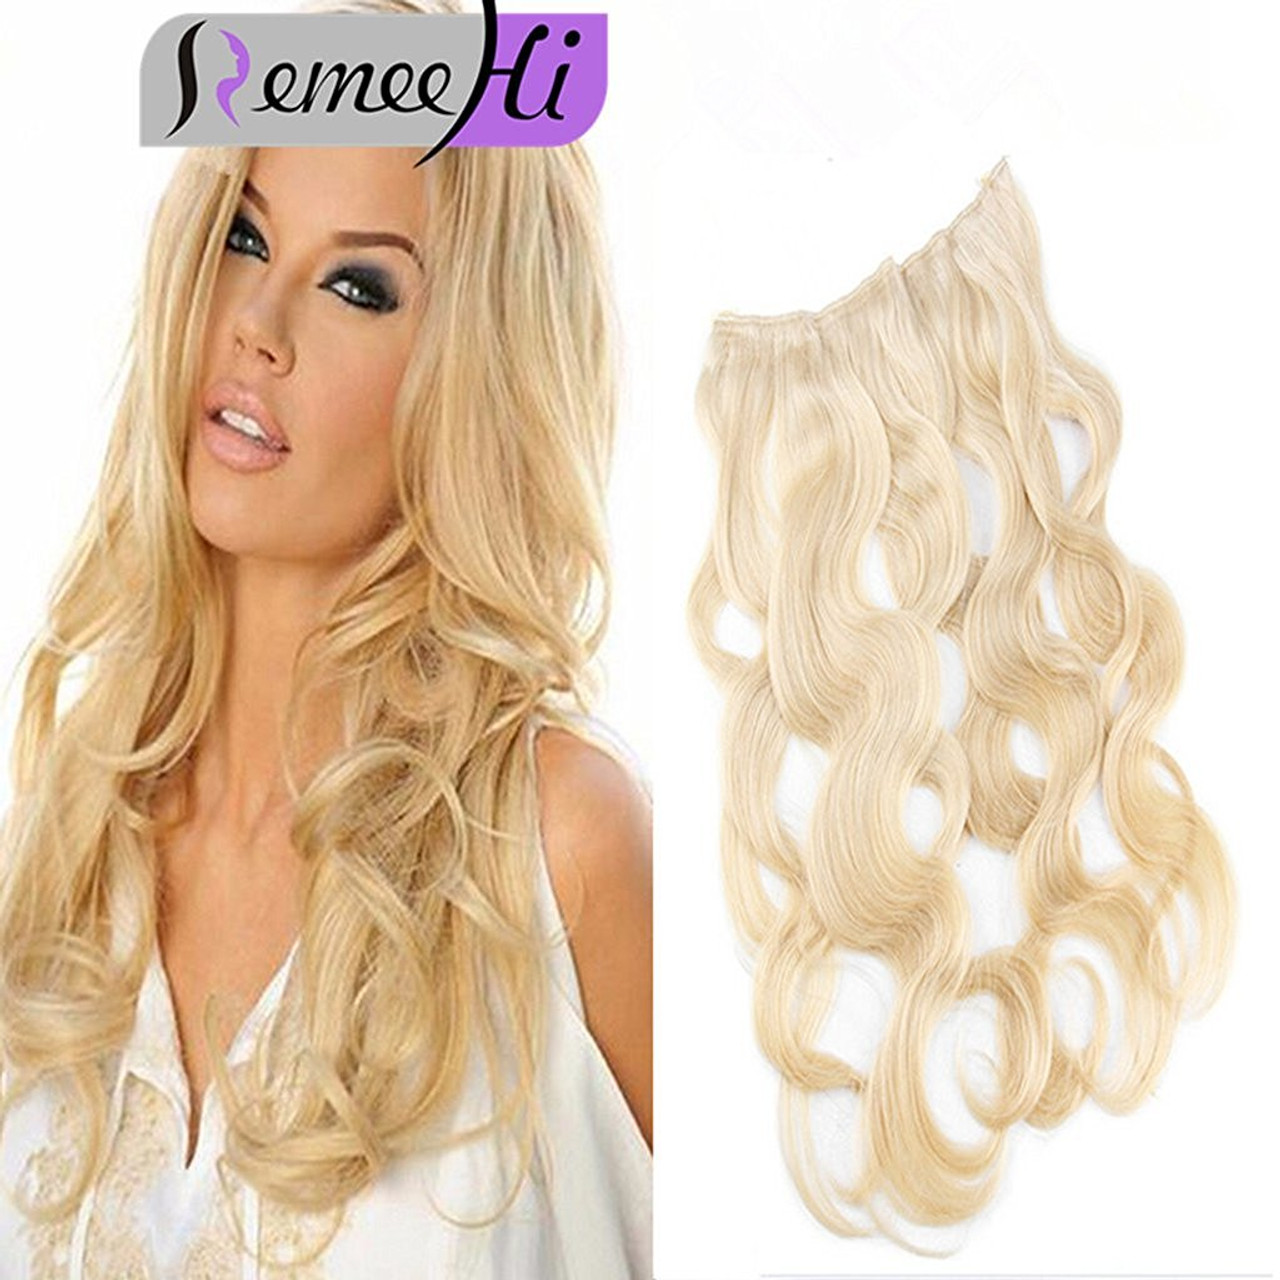 Remeehi Body Wave Secret Halo Hair Extensions Invisible Wire Flip Remy Human 80G Width